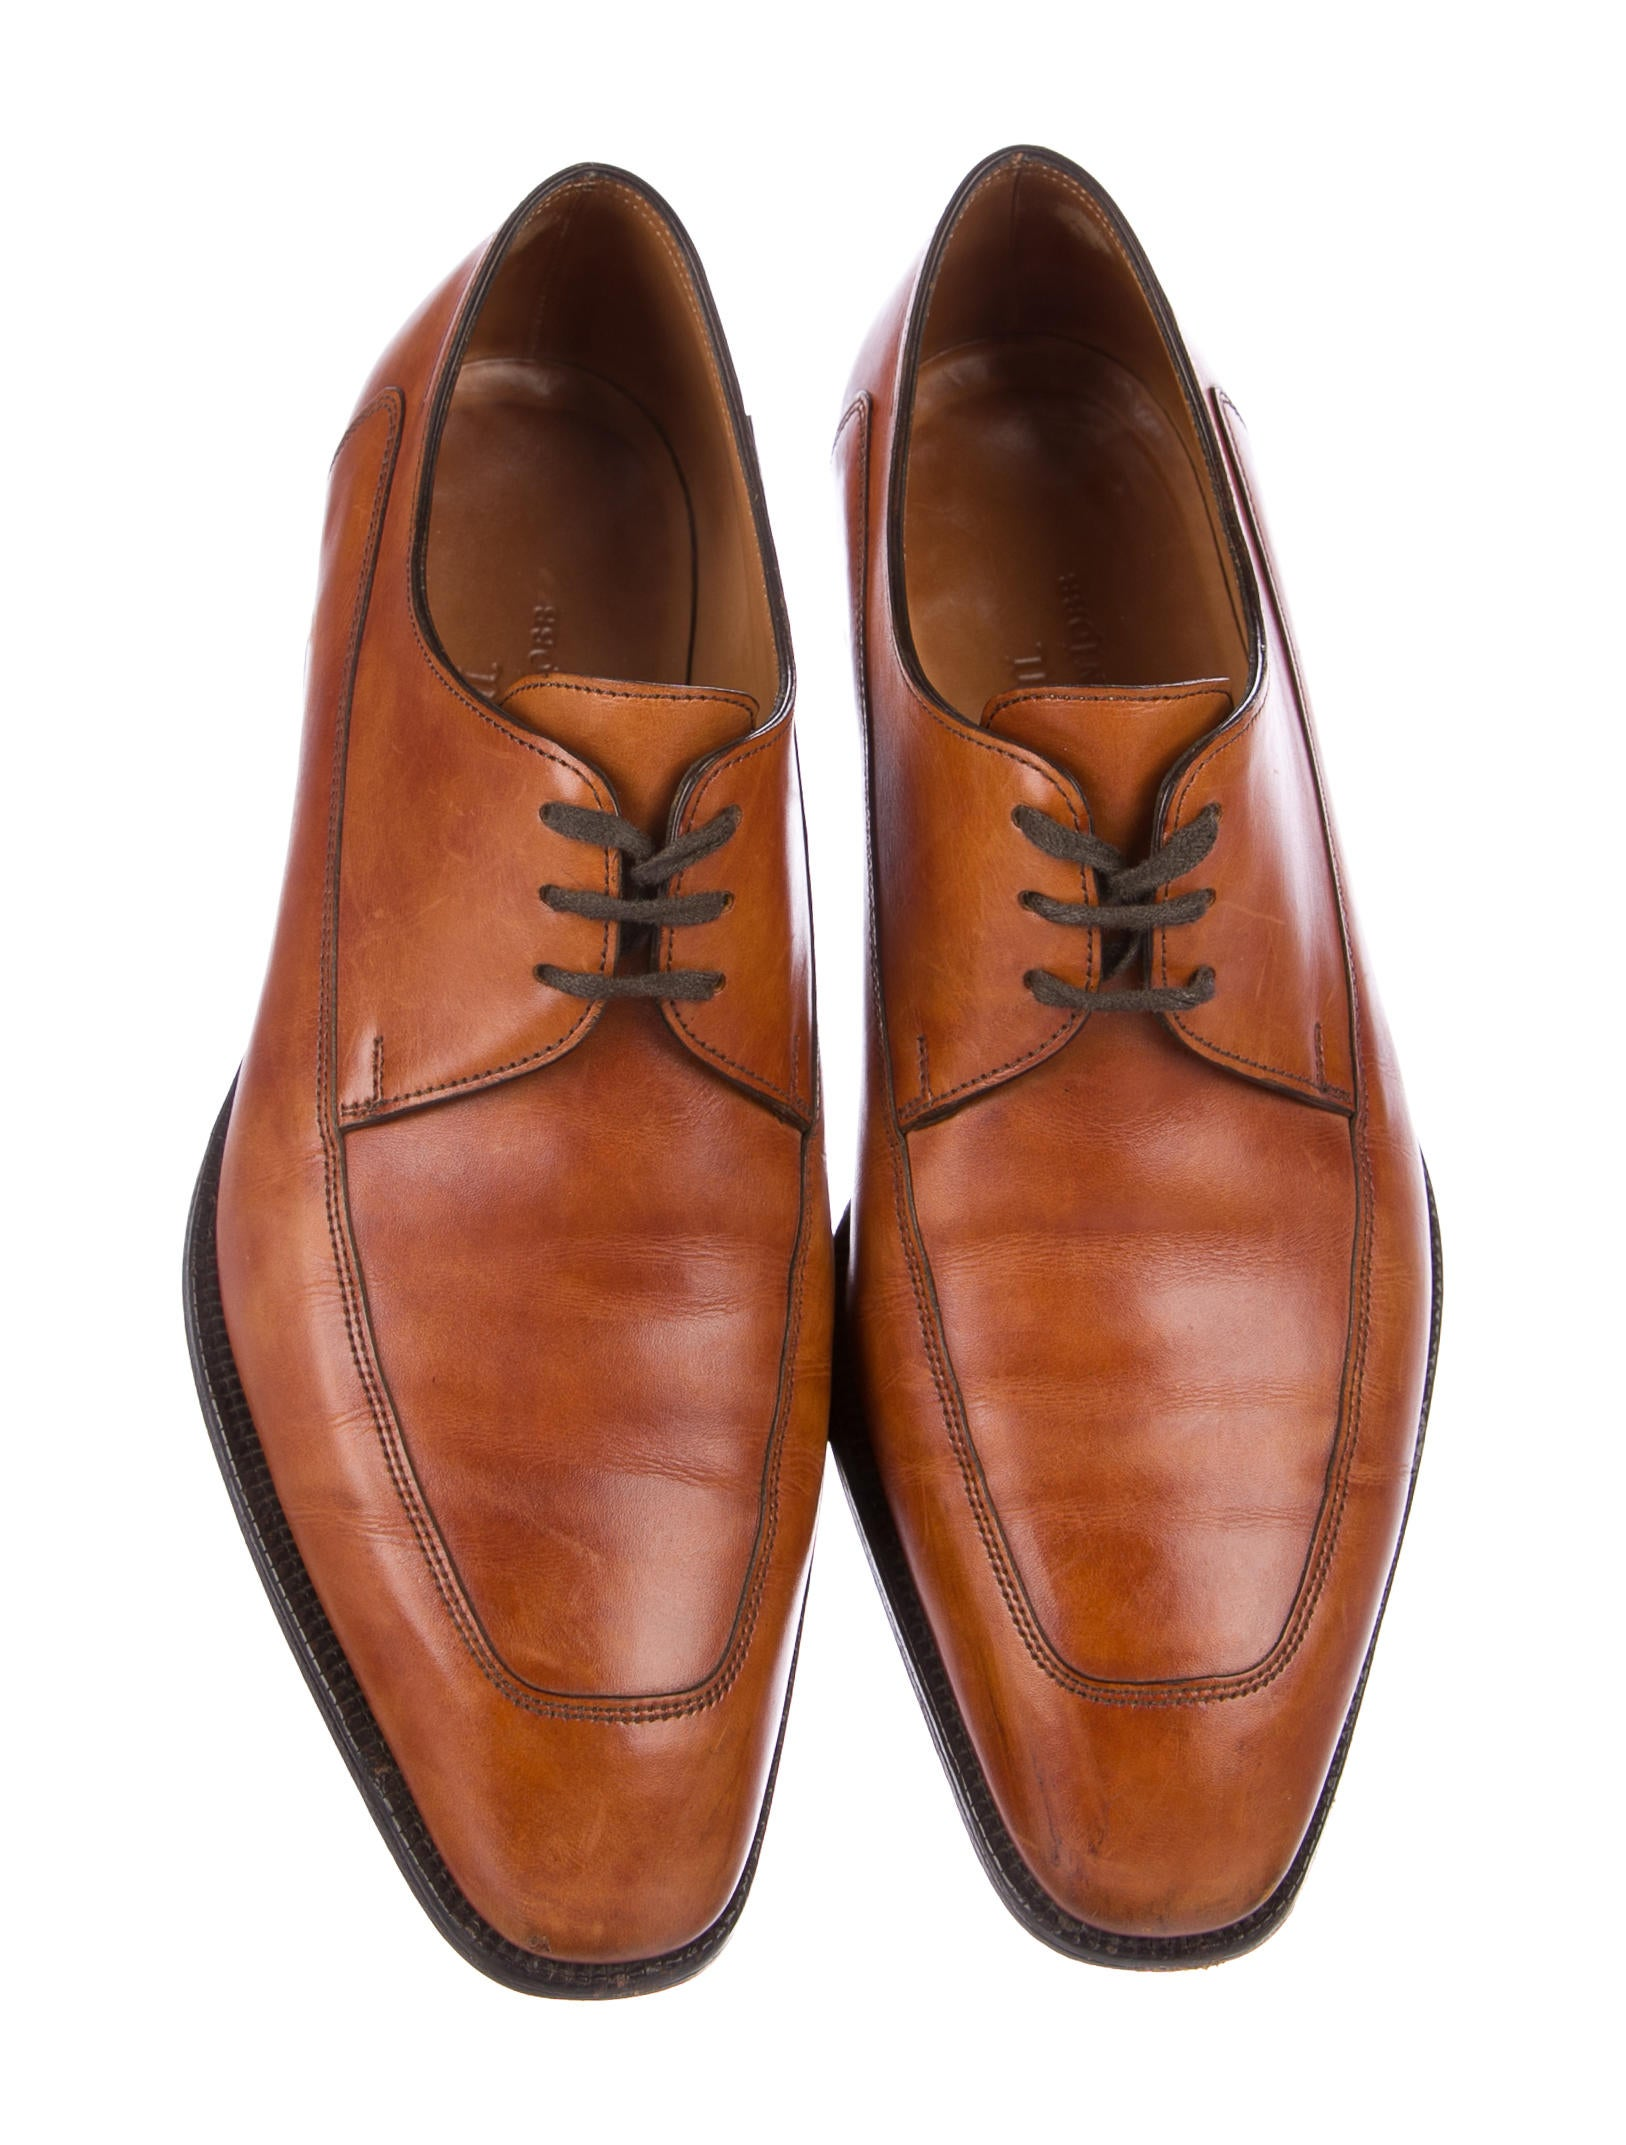 These derby shoes will put the perfect finishing touch on any outfit. New wardrobe ideas arriving daily. Whether you're hitting the street or the gym, we have what you need, with new shoe styles from Tory Burch Flat, Tory Burch Sandals, Schutz, Jeffrey Campbell Sandals Black, Frye Shoes, and Moschino.